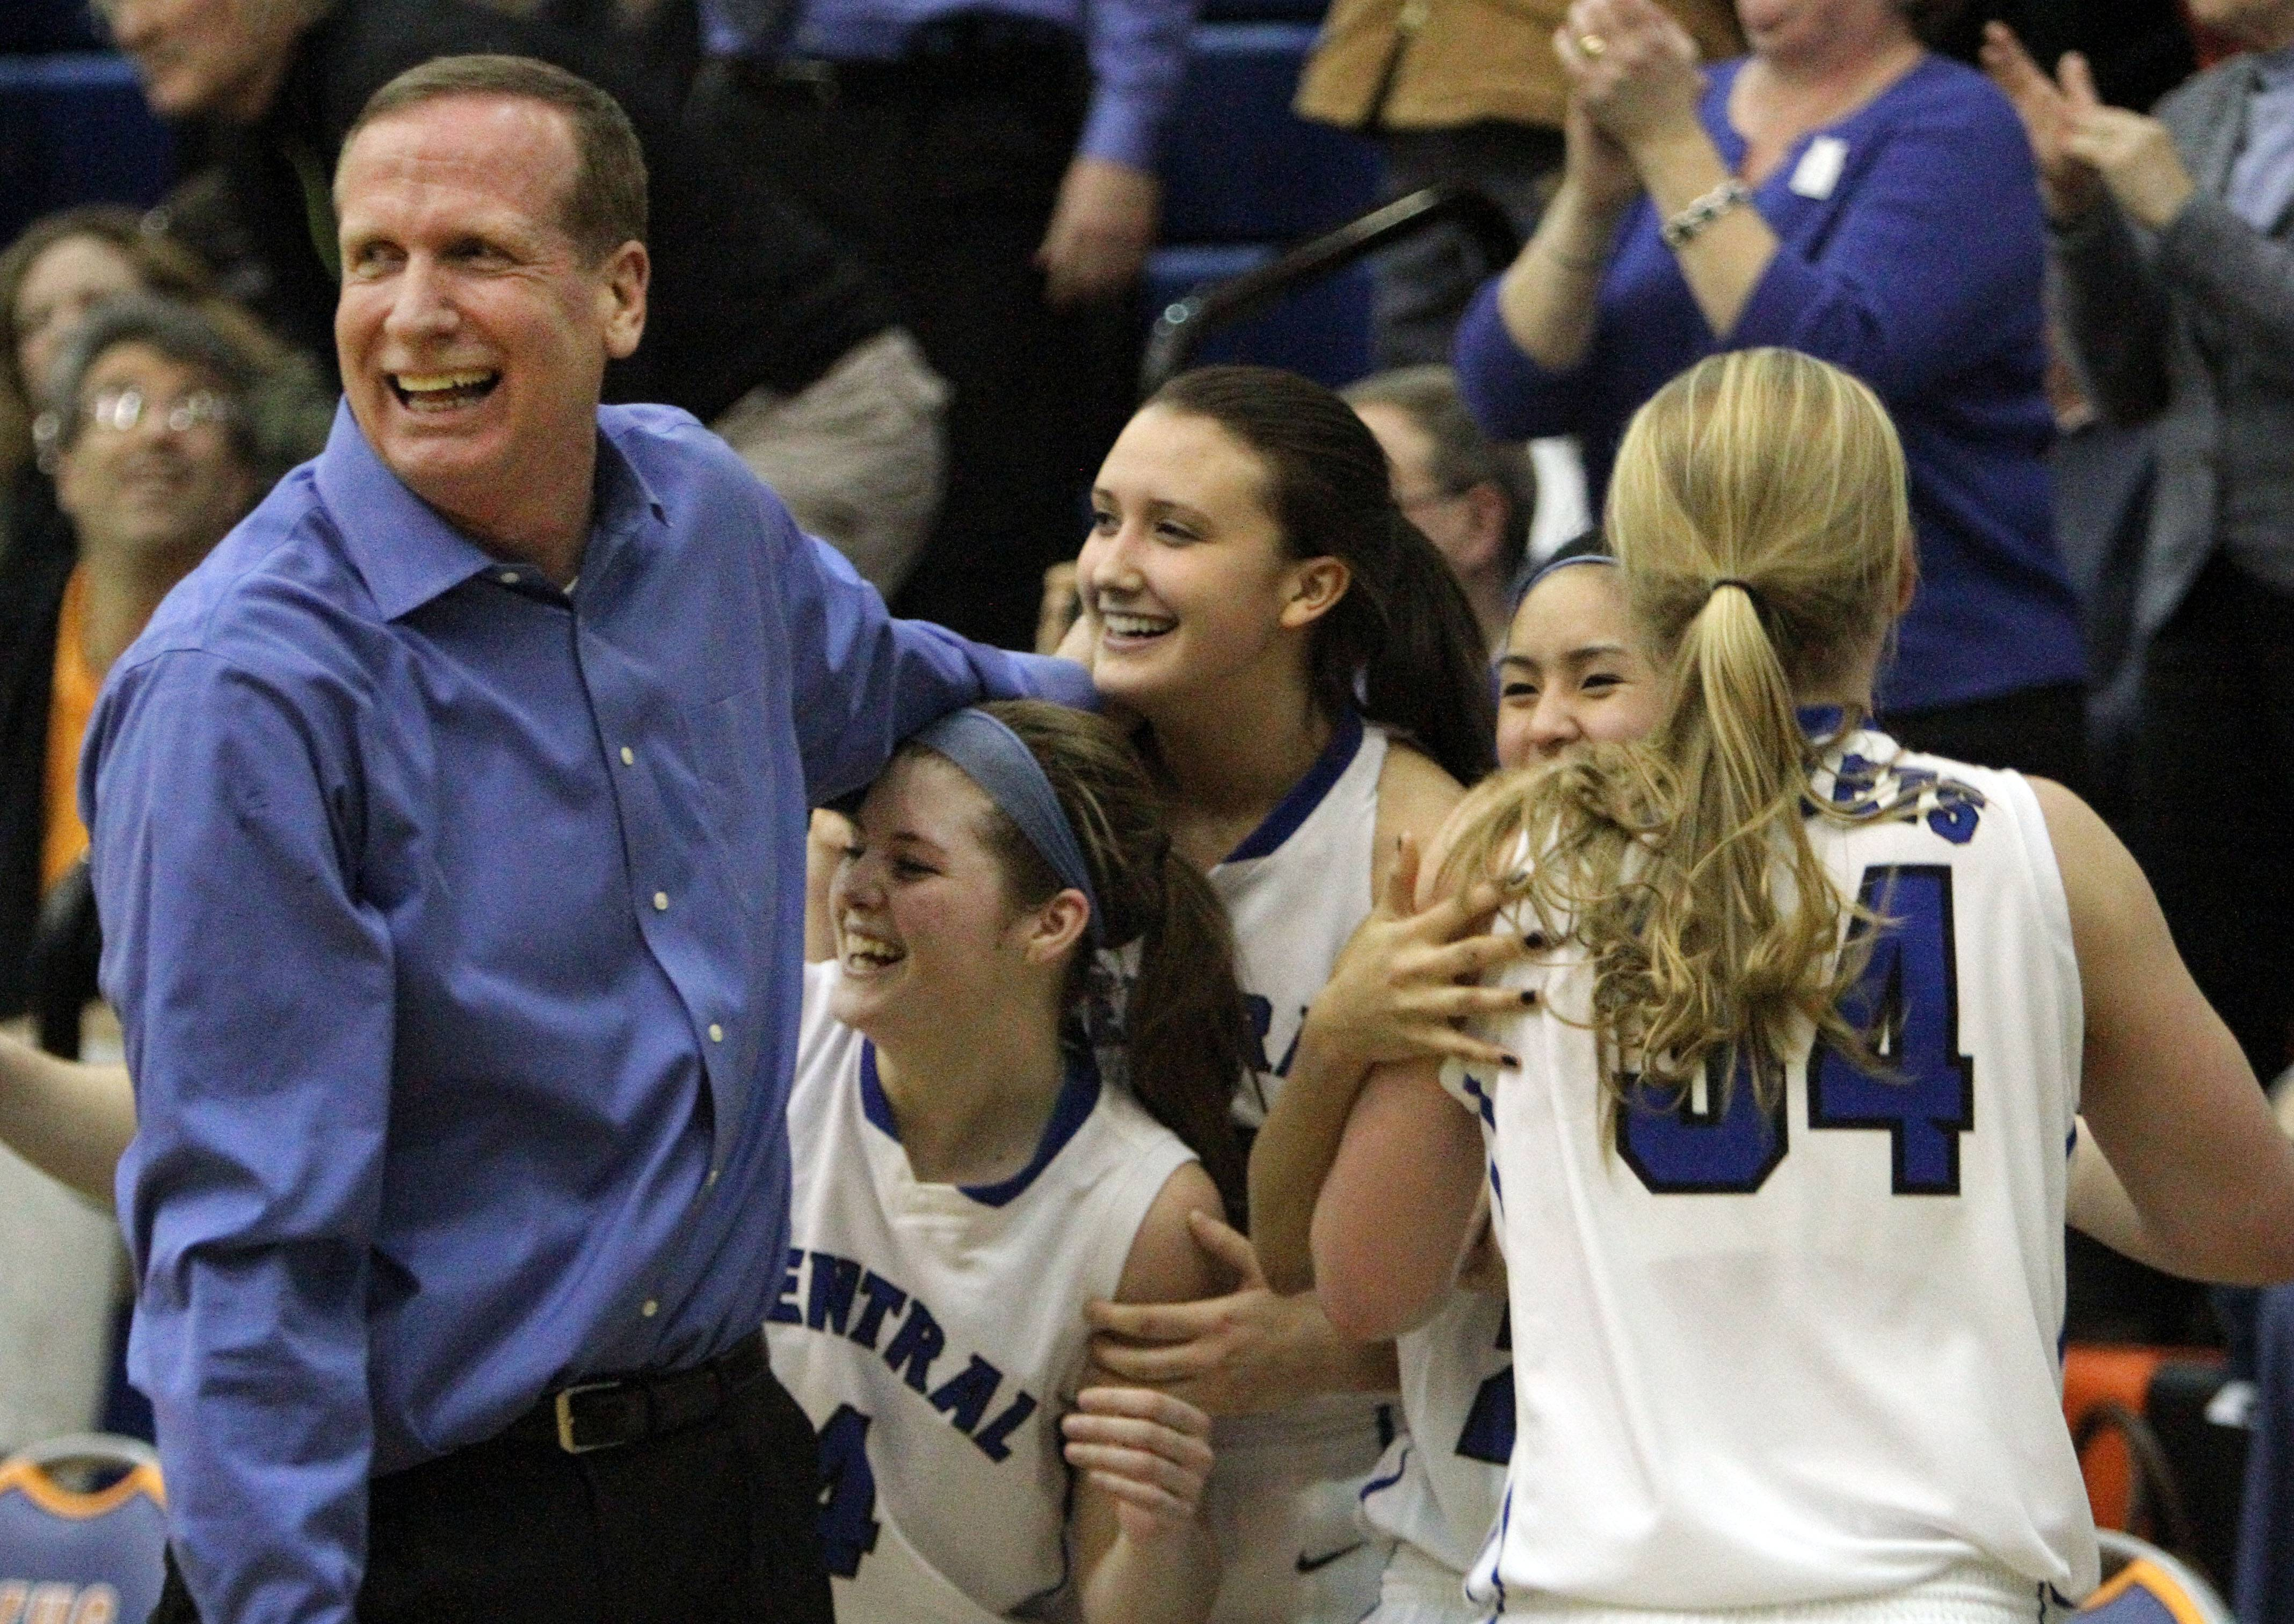 Burlington Central head coach Mark Smith celebrates with his players after defeating Carmel Monday.